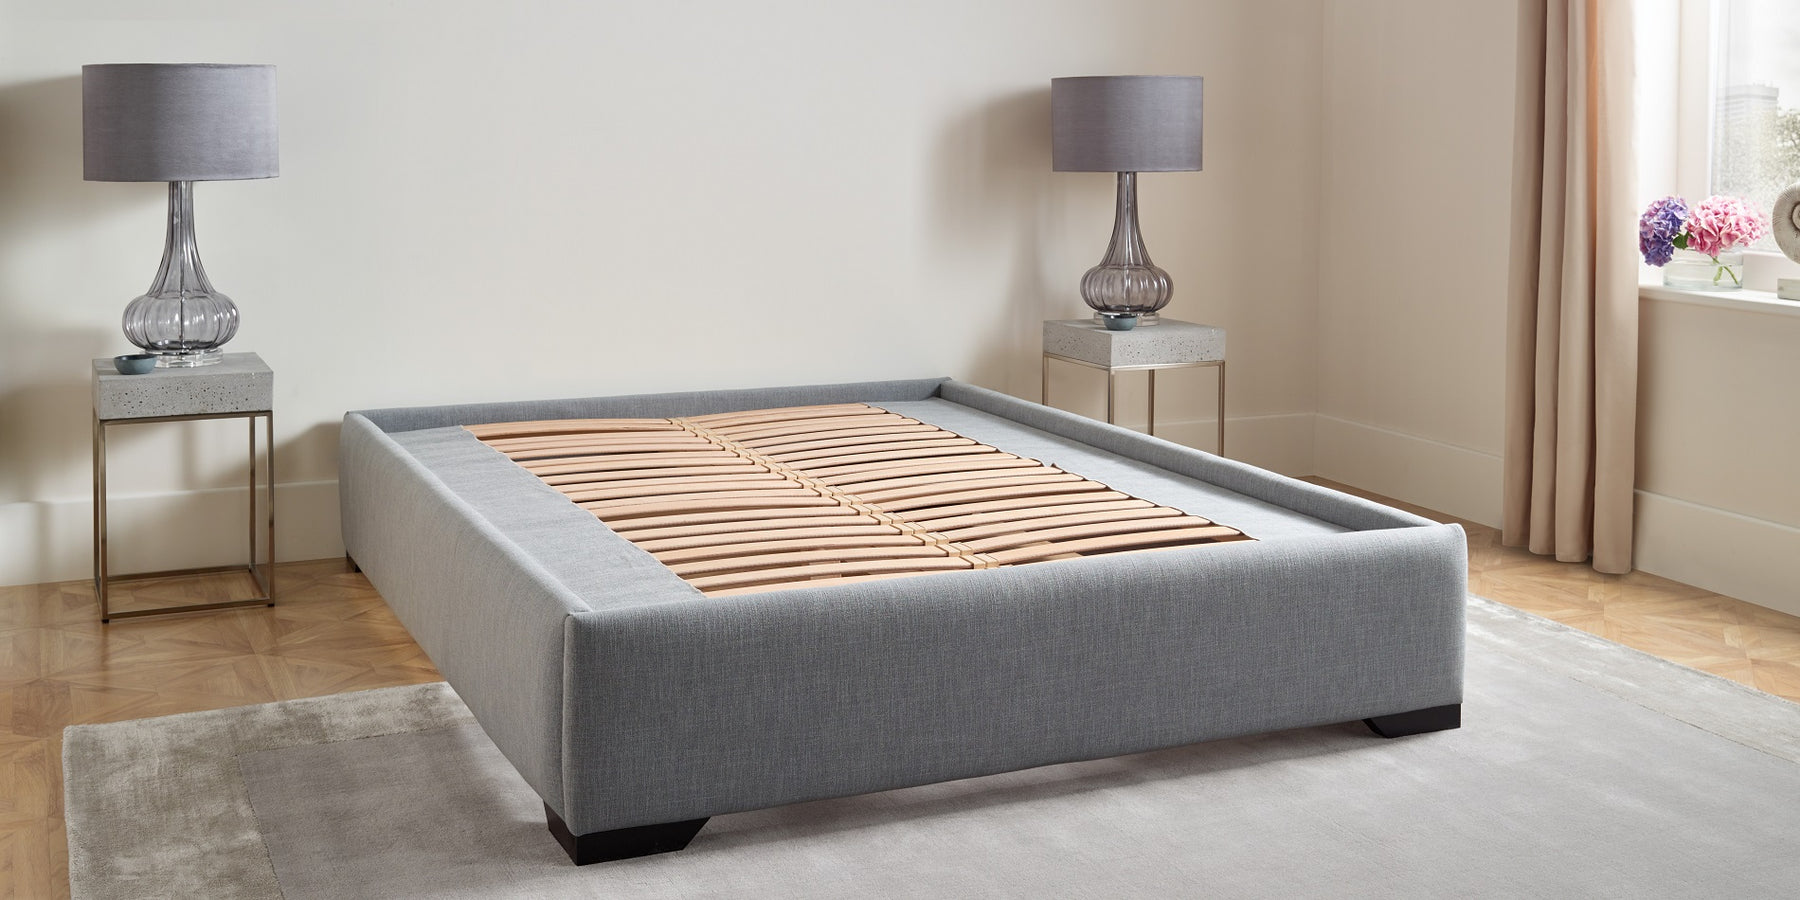 Fixing A Bed With Slats